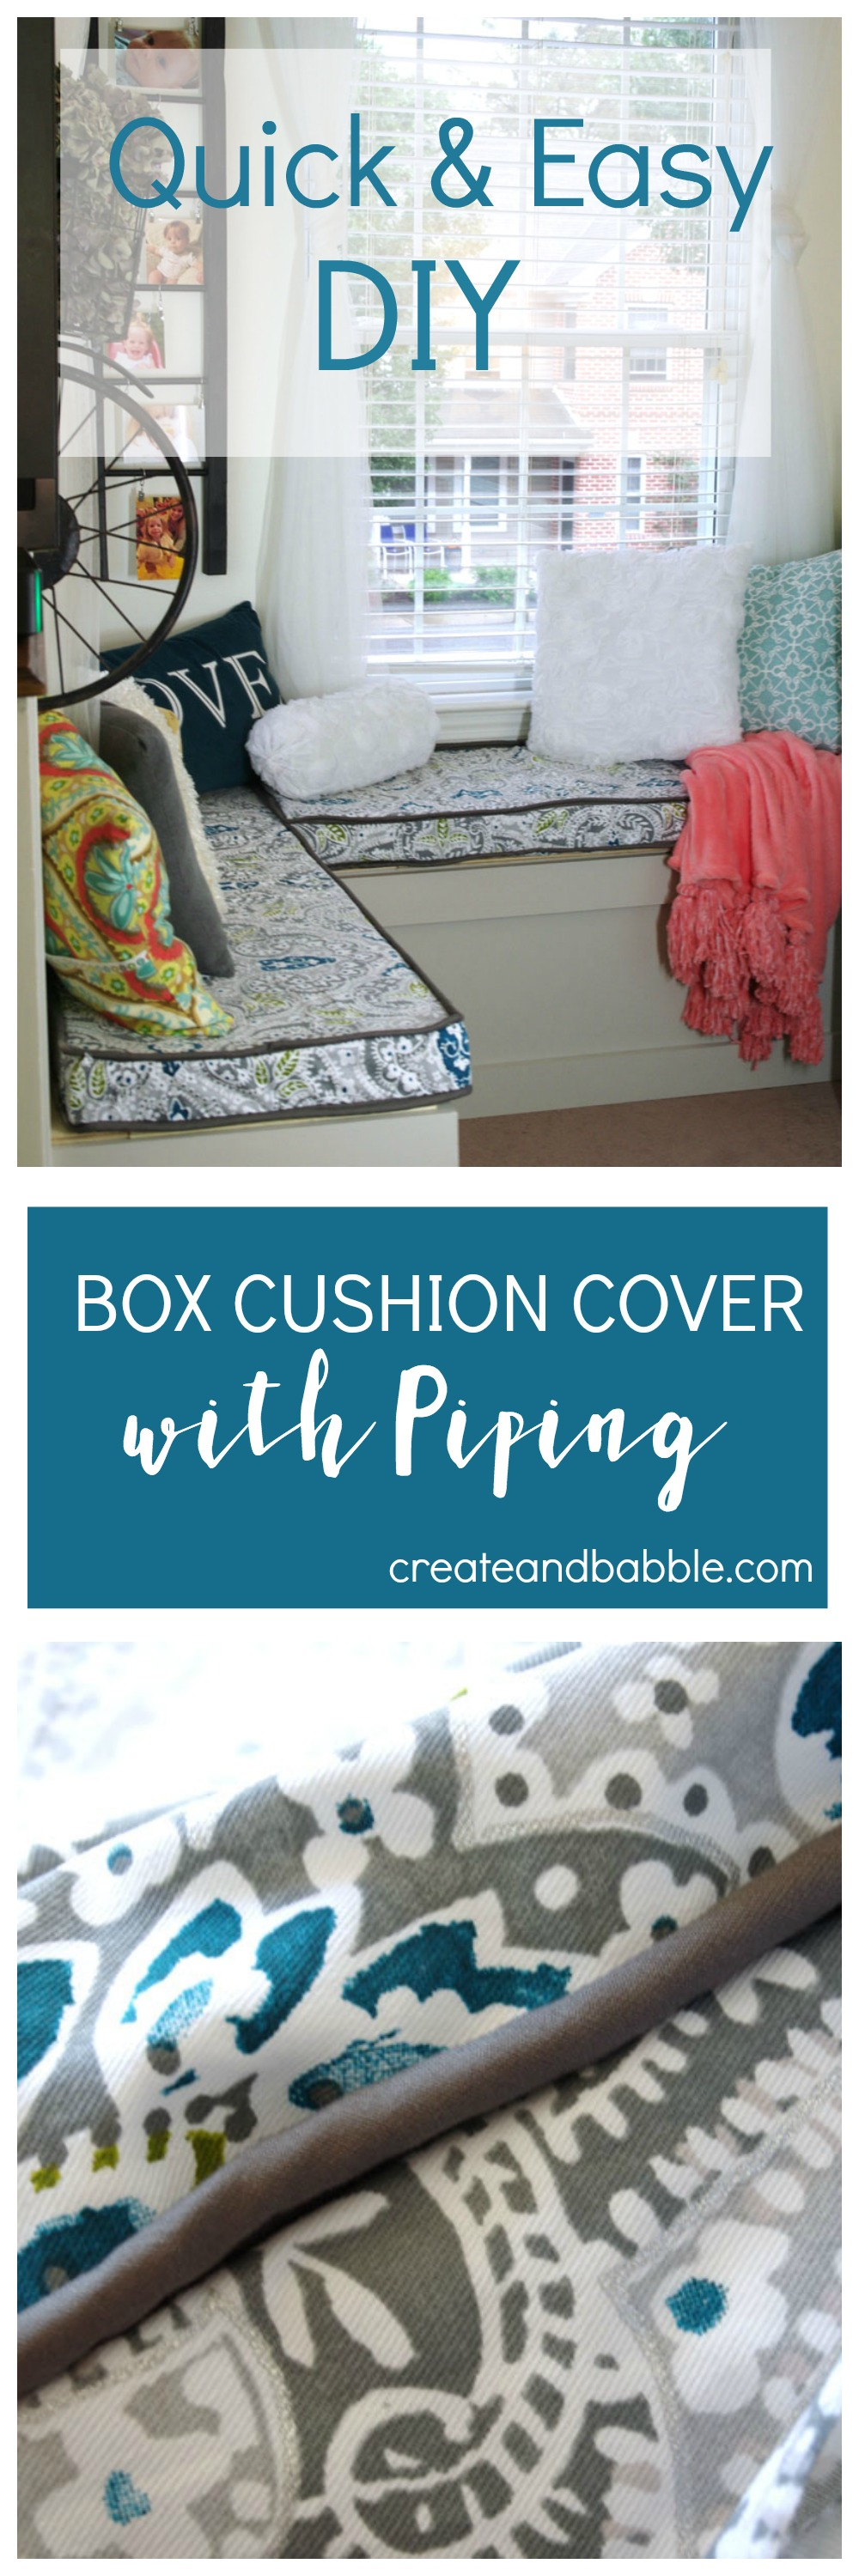 Tips For Making A Box Cushion Cover With Piping Create And